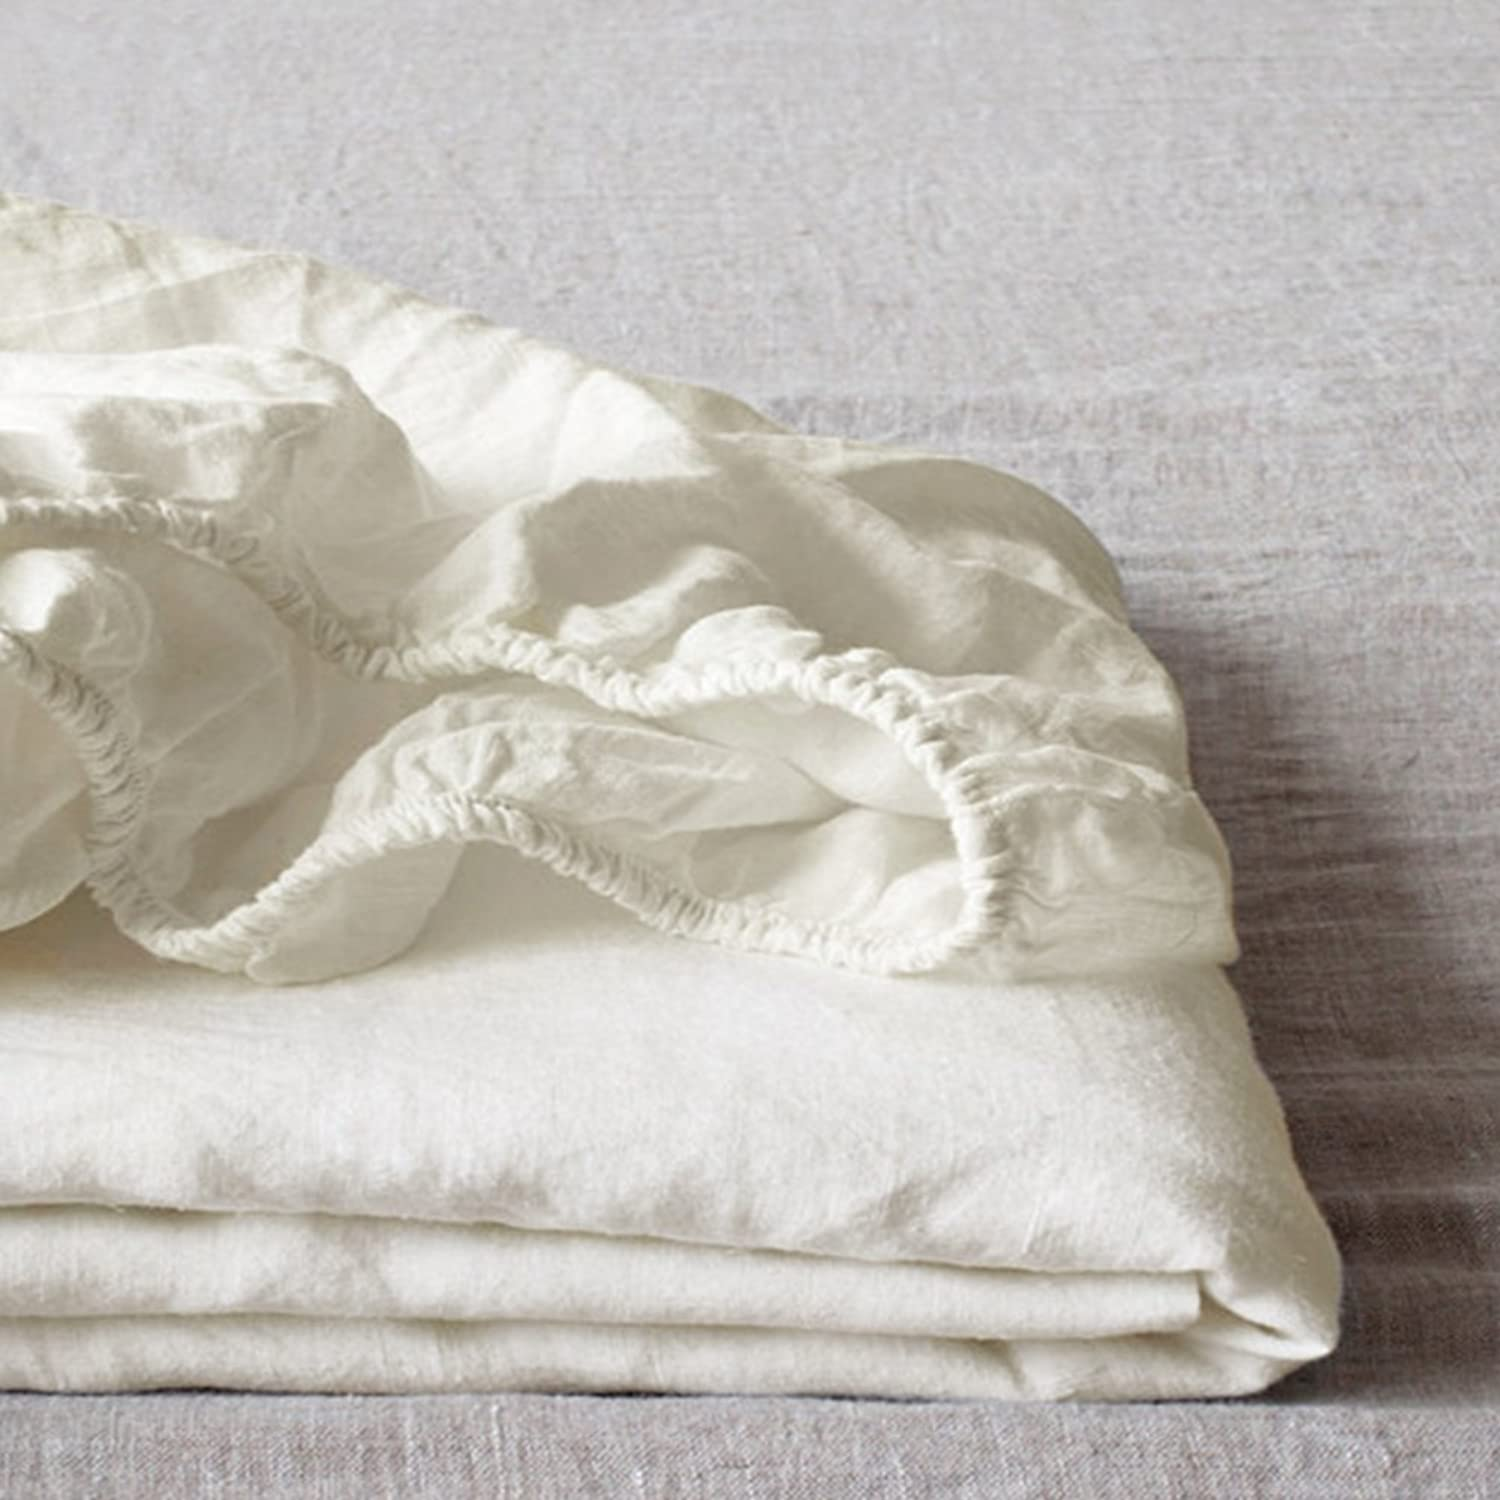 Linen Bed Cover,Pure Linen Mattress Cover Moisture Absorbing Breathable Mattress Cover Hypoallergenic Dust Ruffle Fitted Sheets-Beige 150x200x30cm(59x79x12inch)